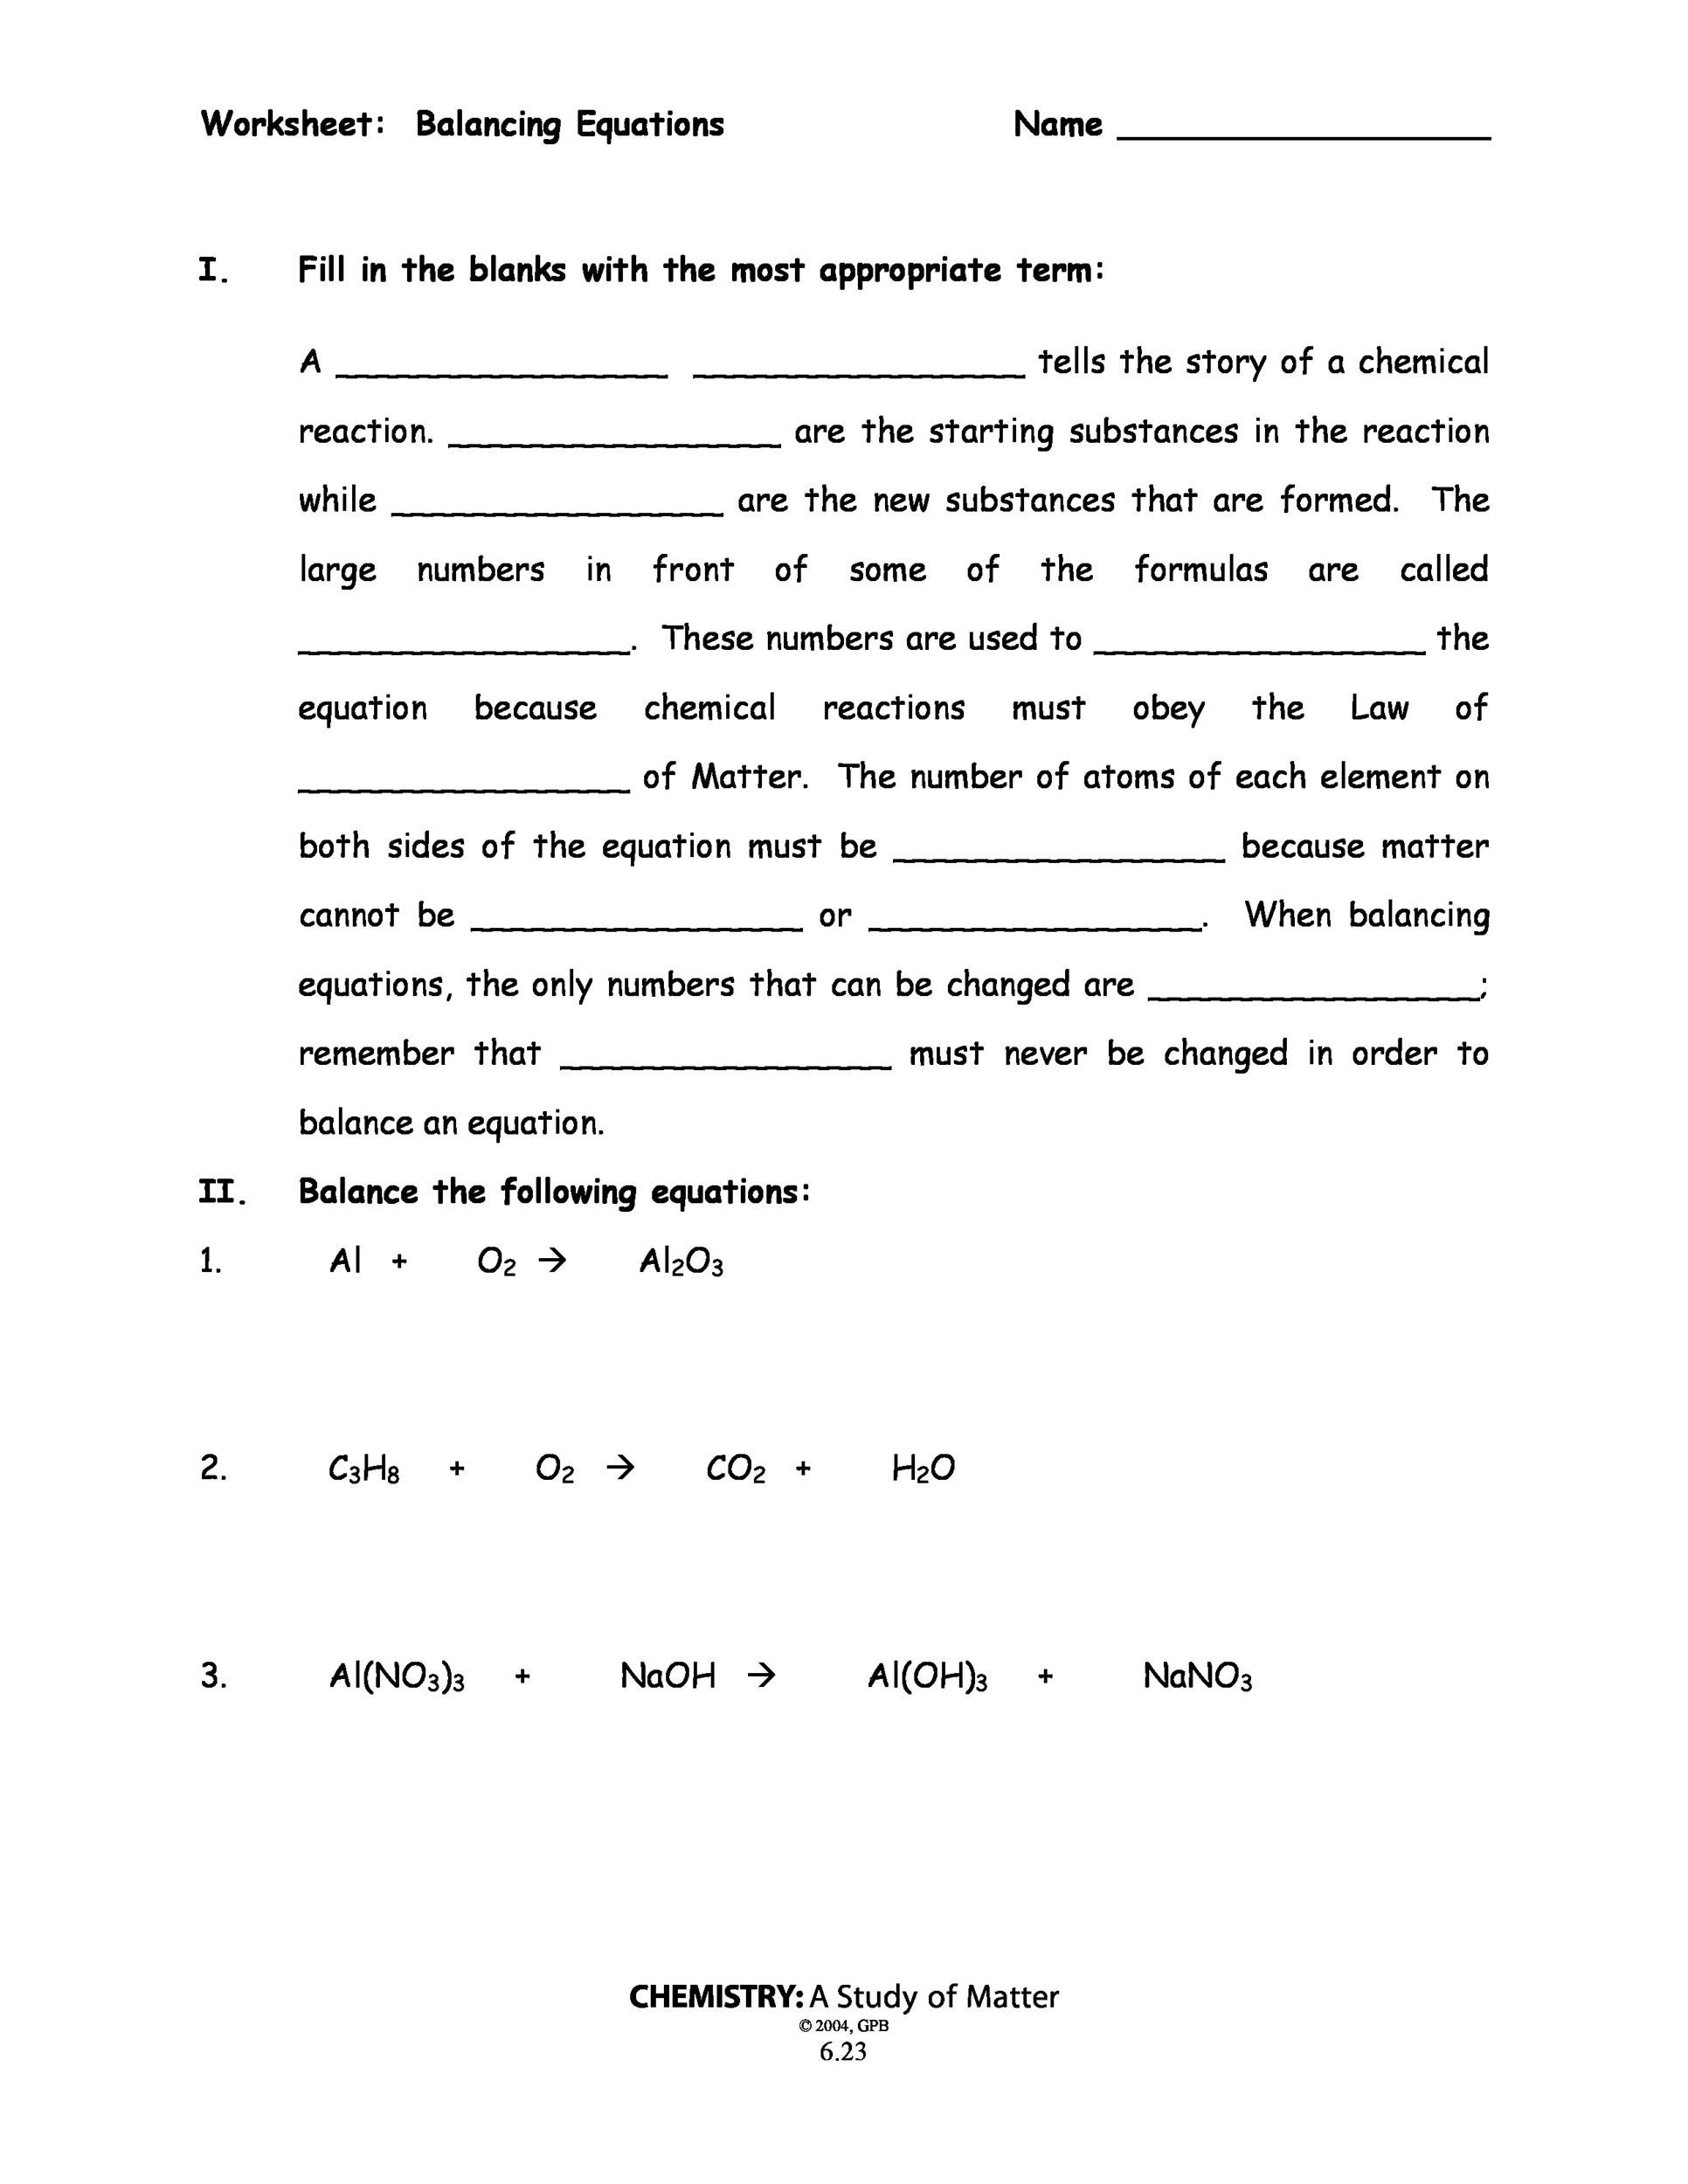 balancing chemical equations worksheets - Balancing Equations Worksheet Answers